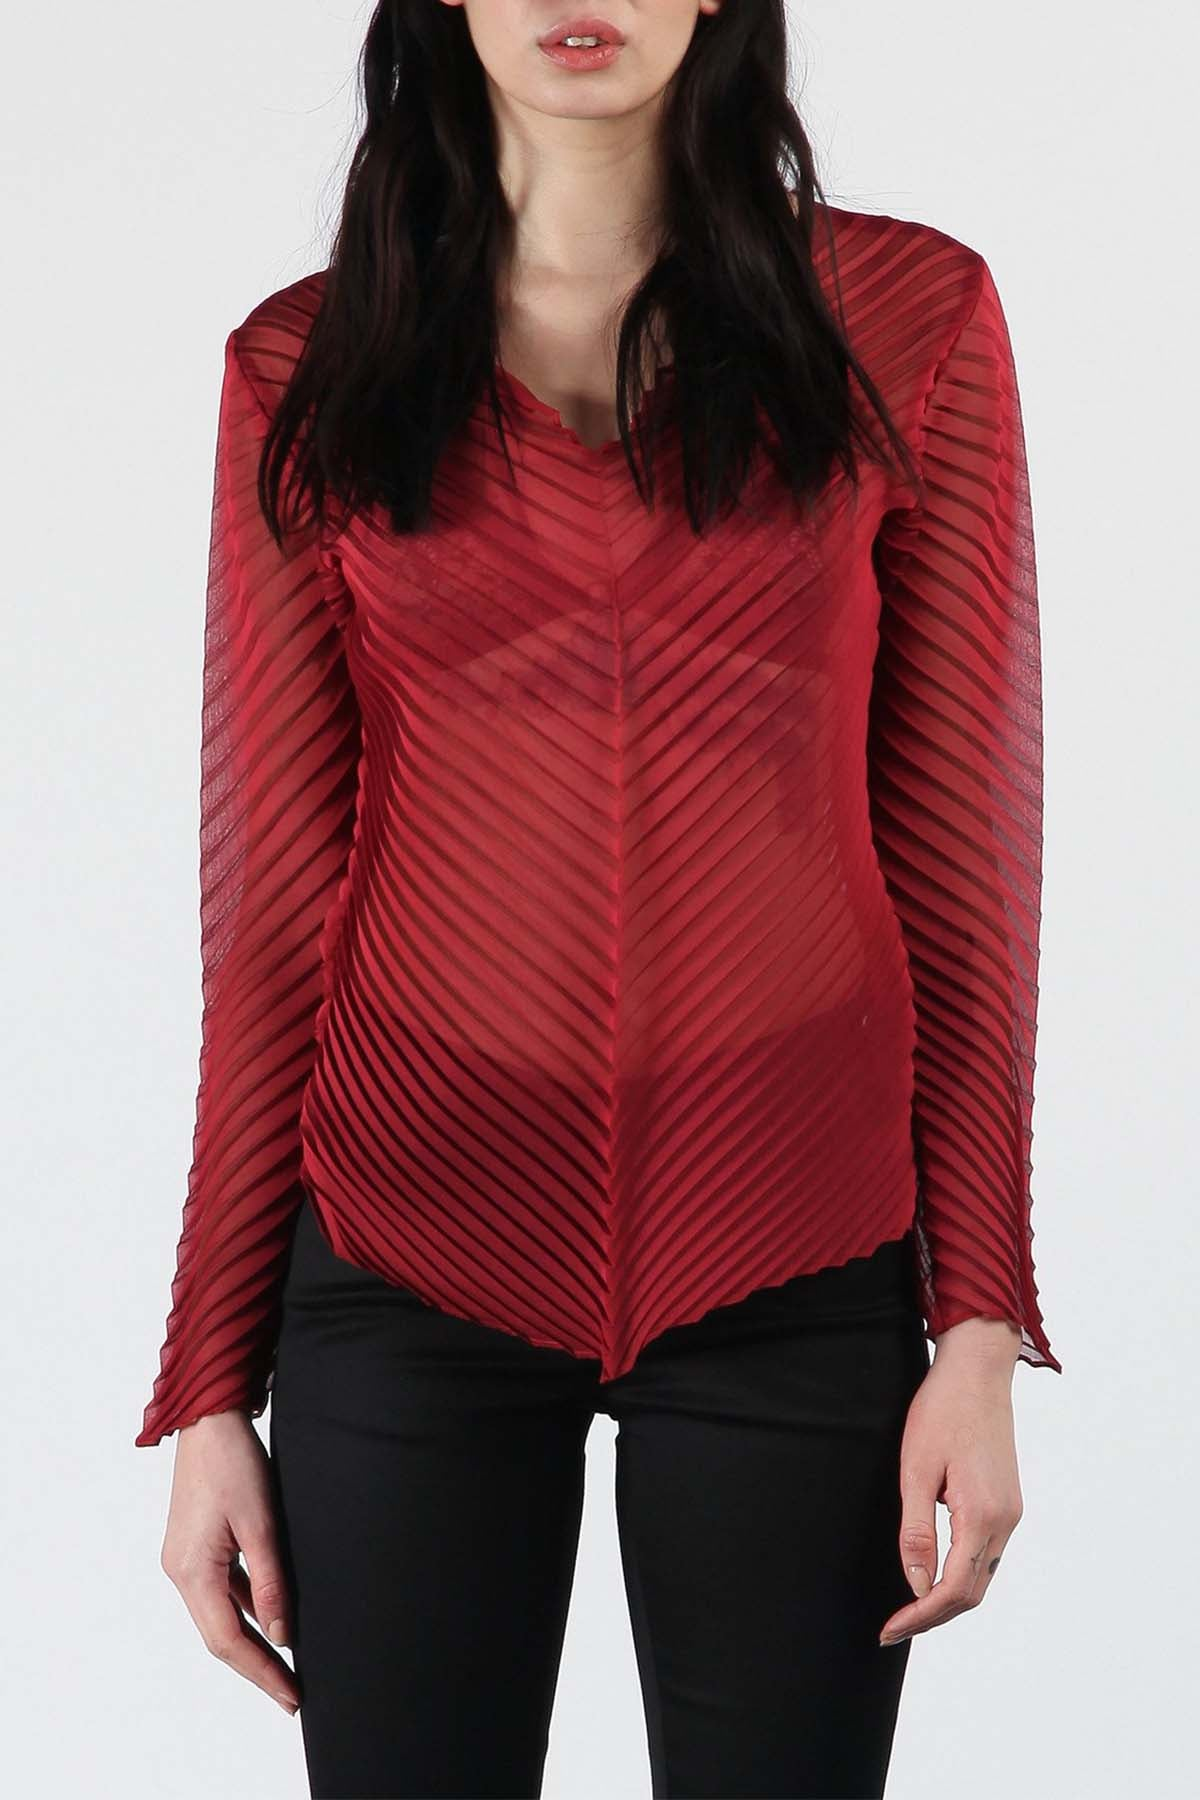 Red Chevron Top